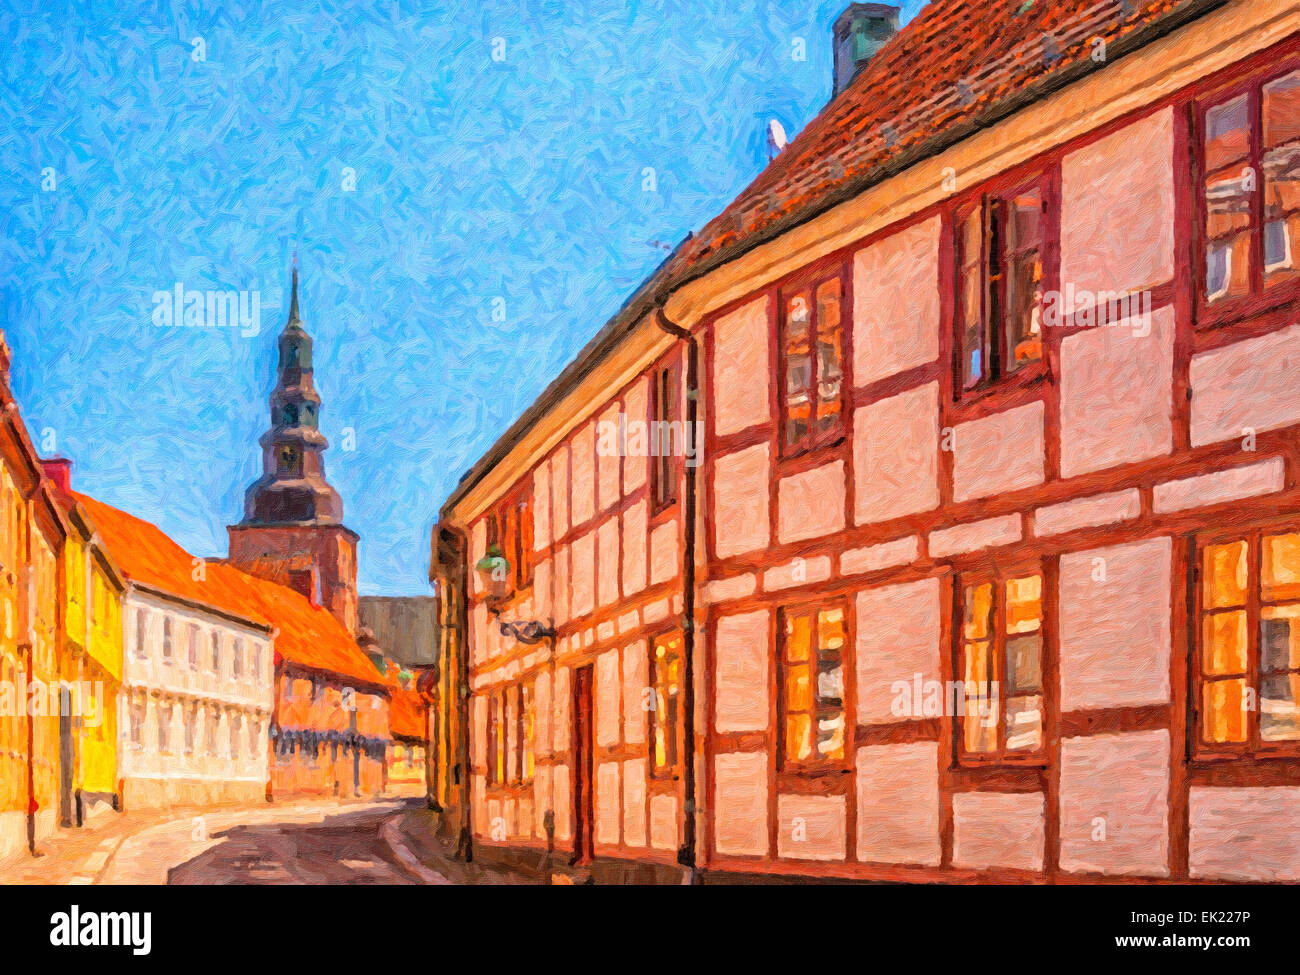 Digital painting of a street scene from the Swedish town of Ystad. - Stock Image